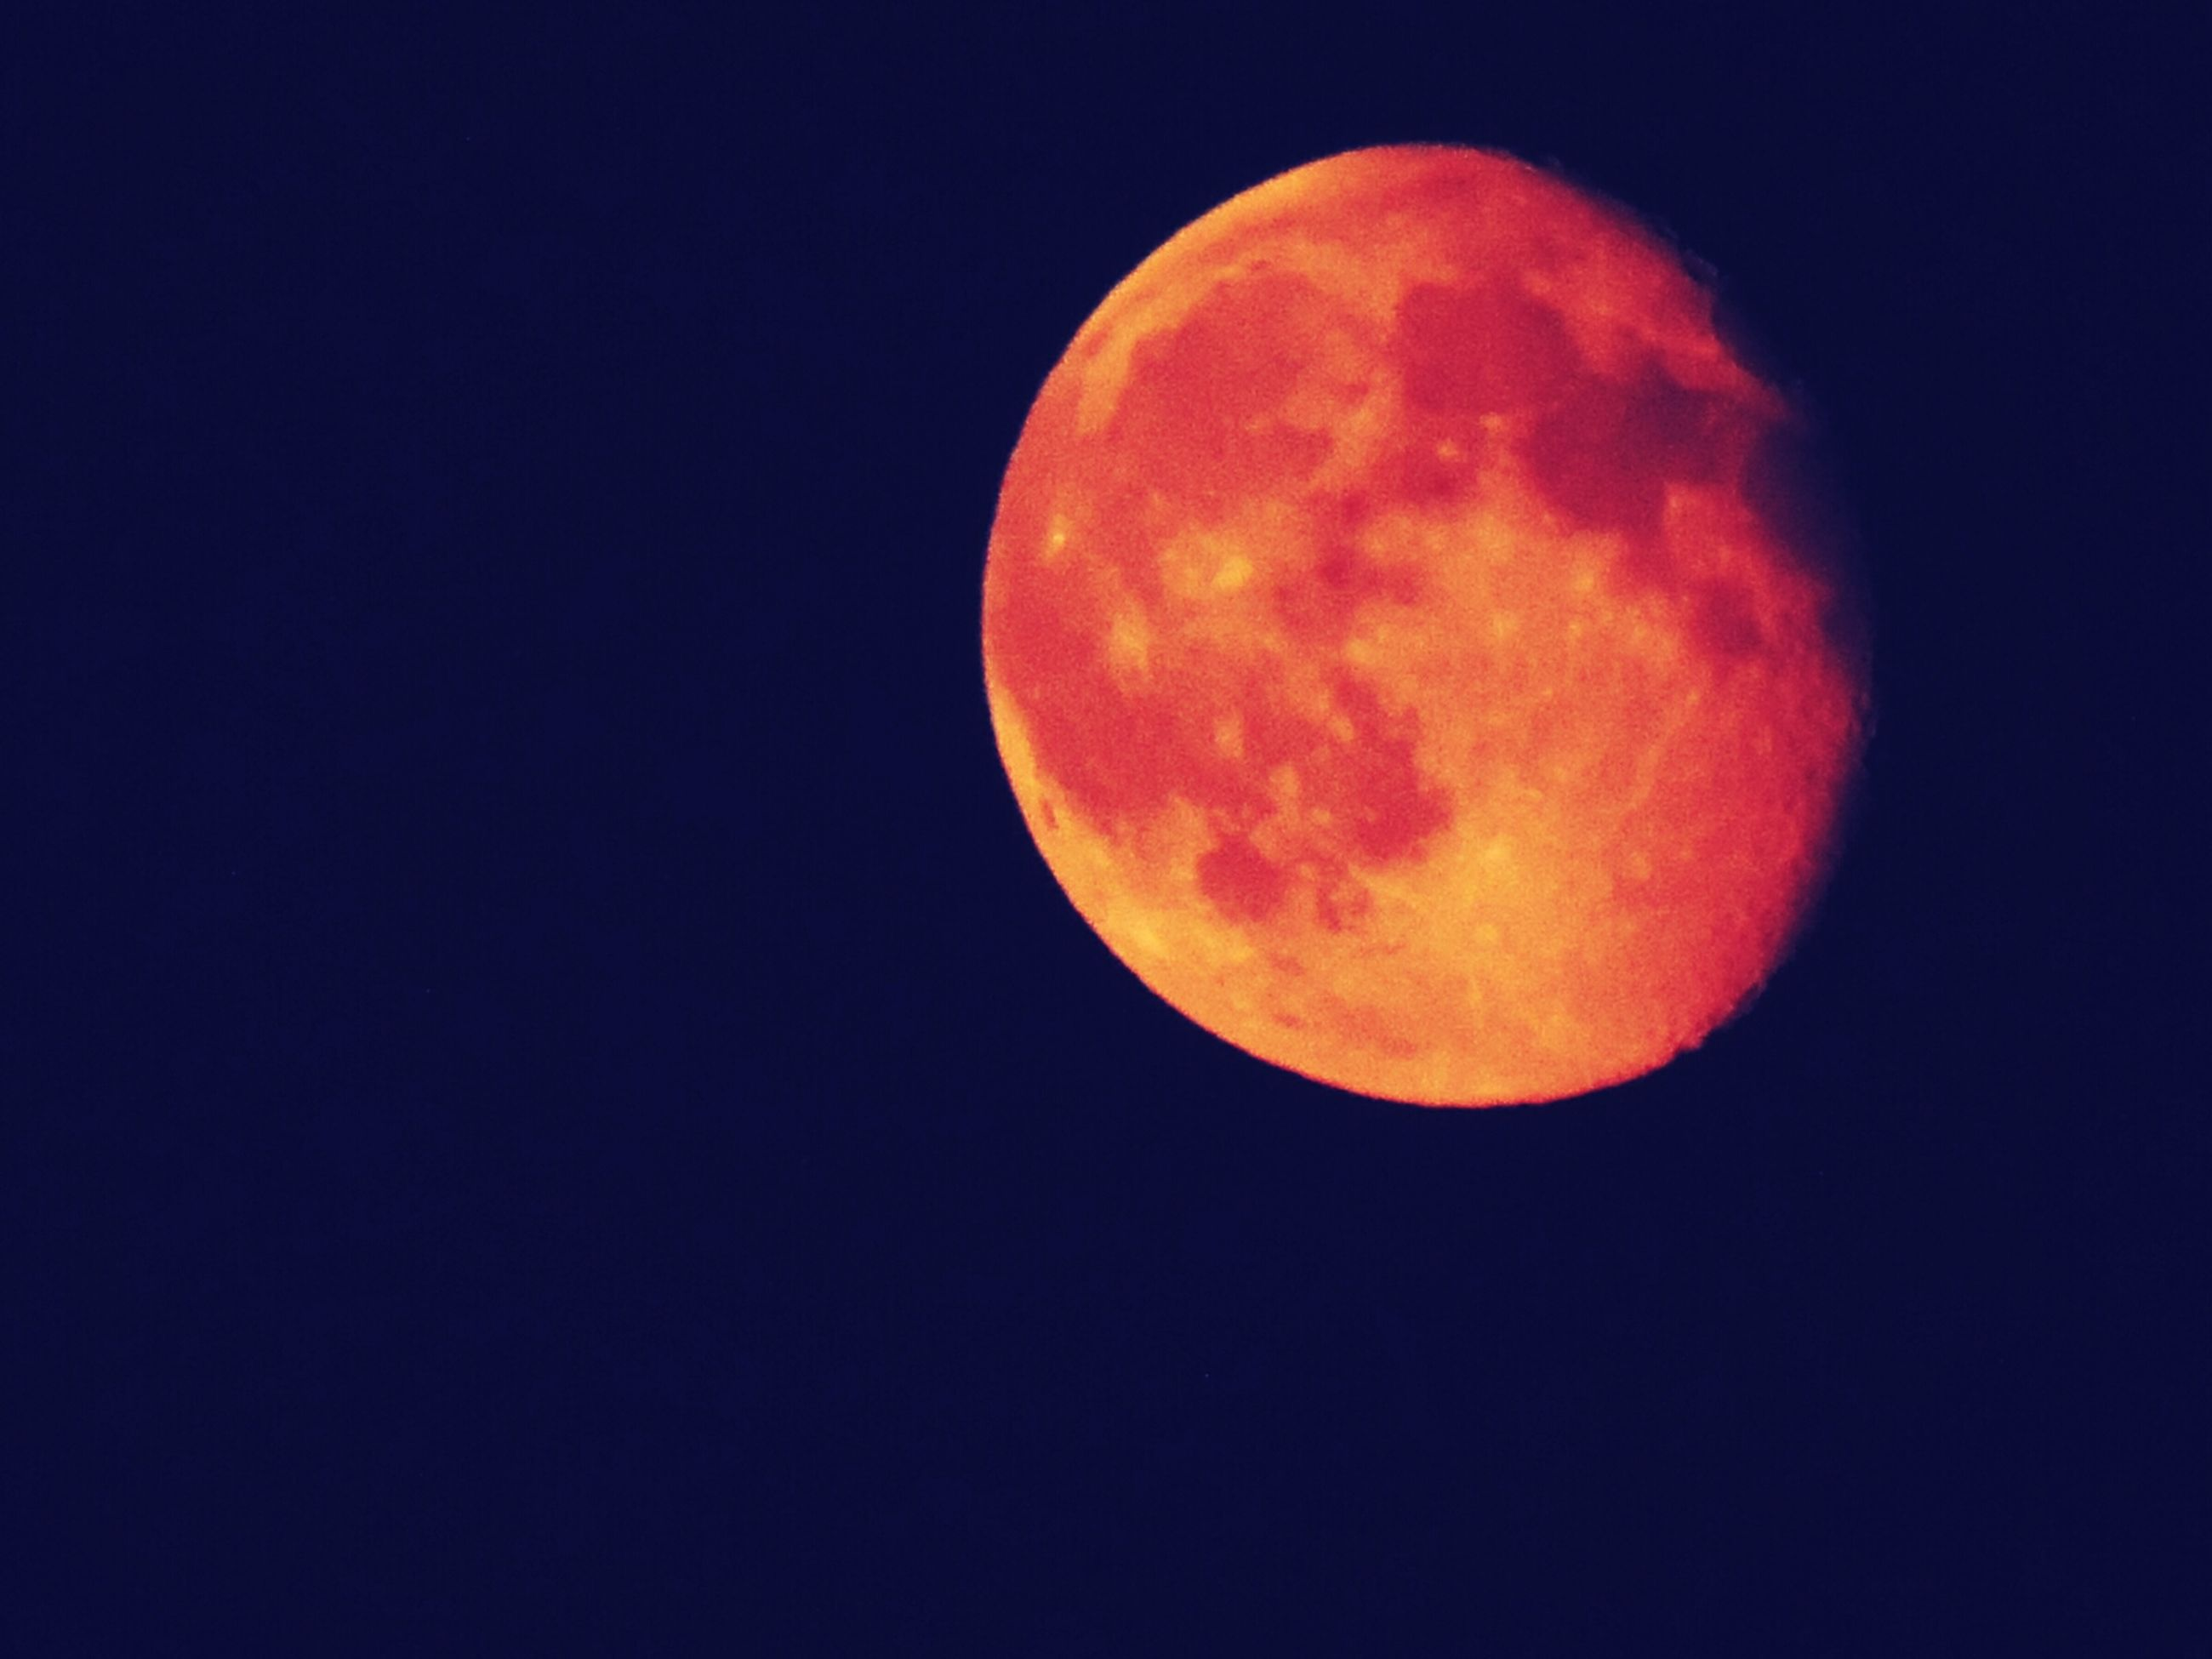 moon, copy space, astronomy, full moon, planetary moon, night, clear sky, beauty in nature, moon surface, low angle view, scenics, tranquil scene, tranquility, circle, space exploration, sphere, discovery, nature, idyllic, sky